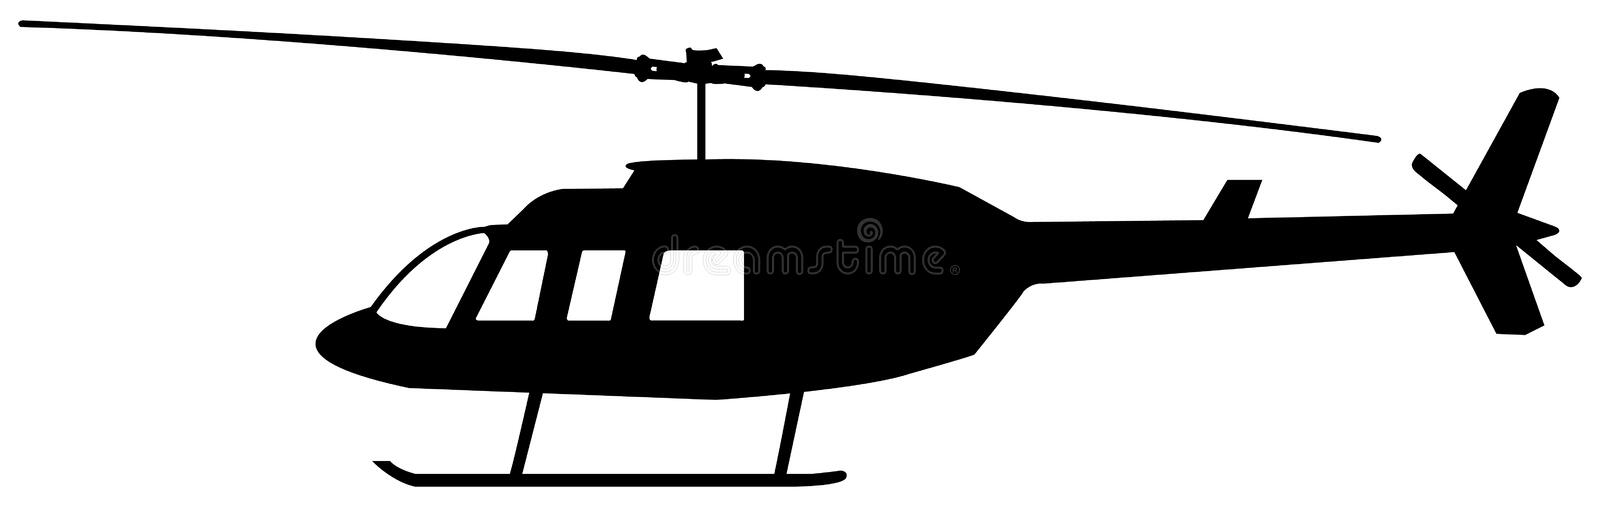 Helicopter silhouette. Vector drawing of a helicopter vector illustration